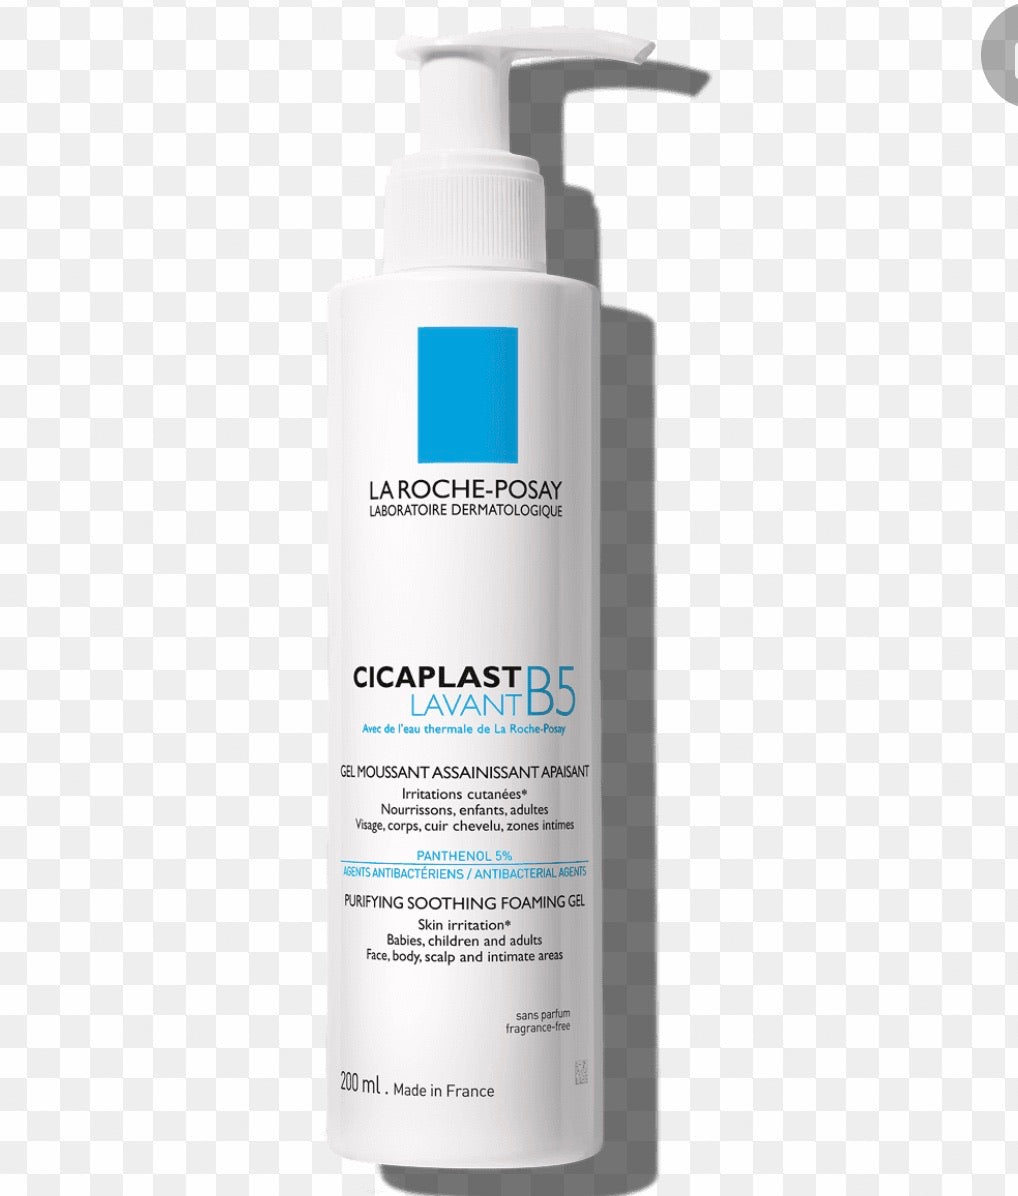 La roche Cica plast B5 purifying soothing foaming gel